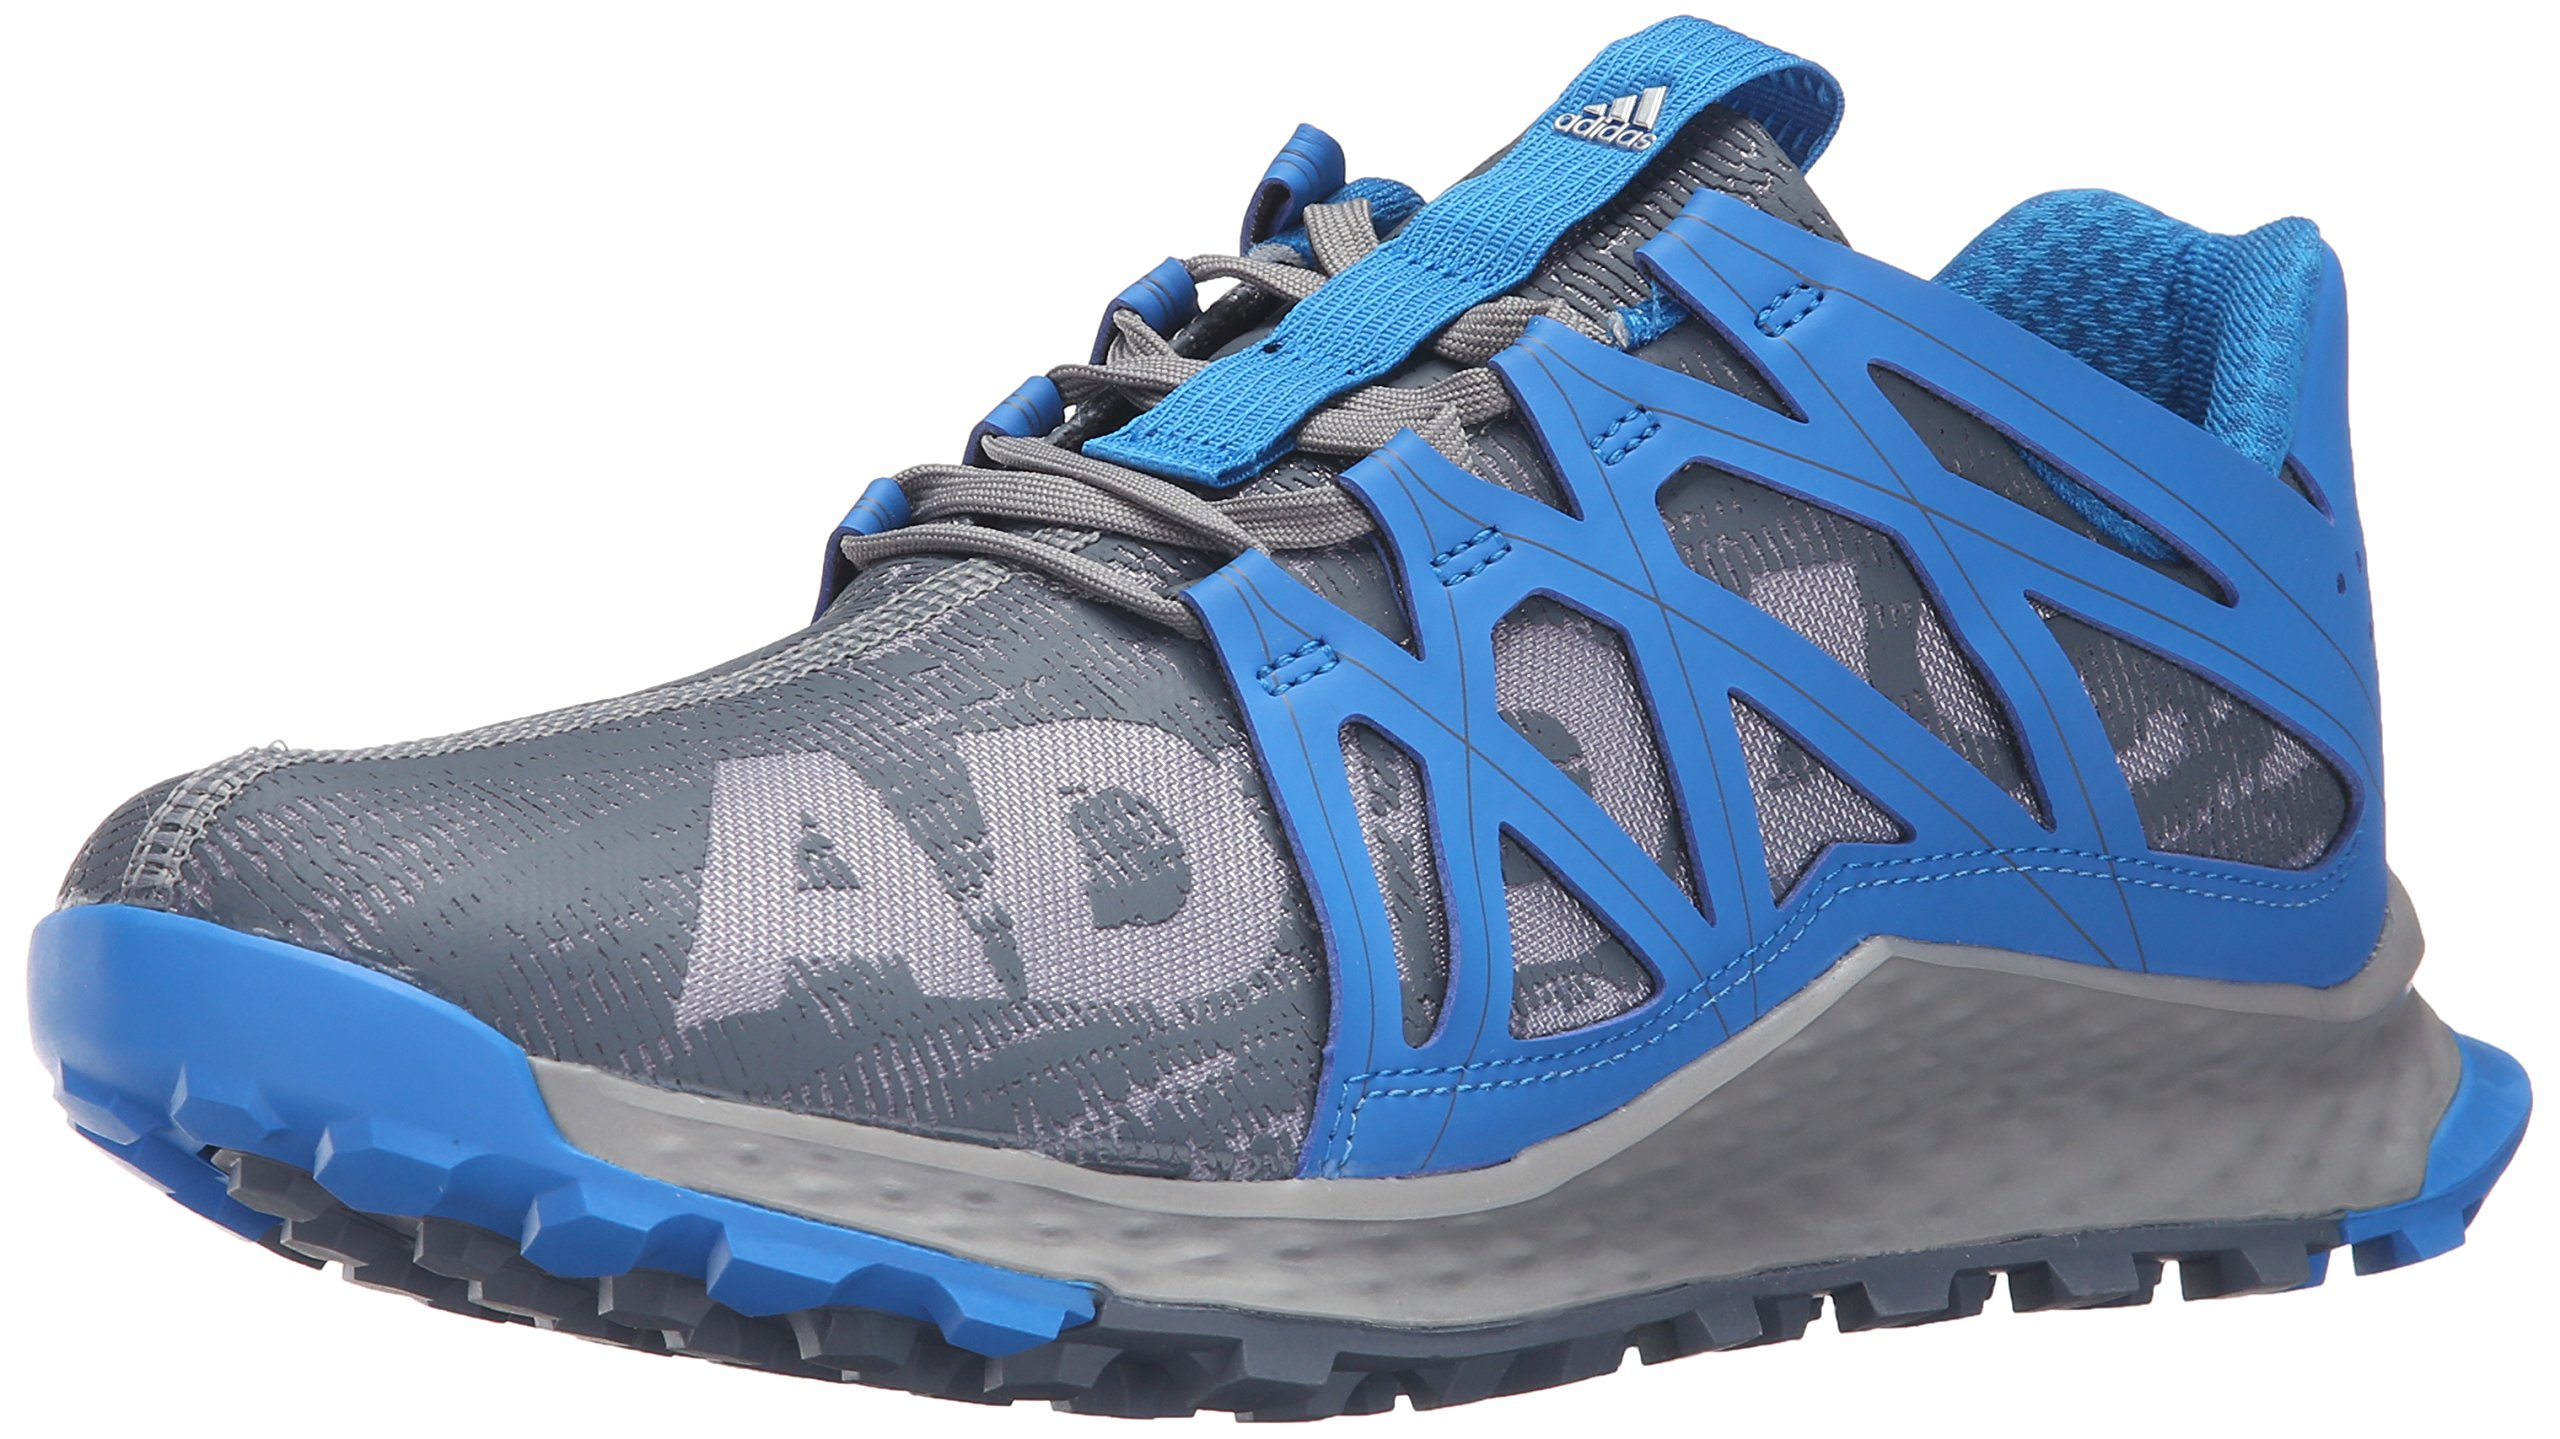 aef4393d8 Galleon - Adidas Men's Vigor Bounce M Trail Runner, Grey/Onix/Shock Blue,  10 M US